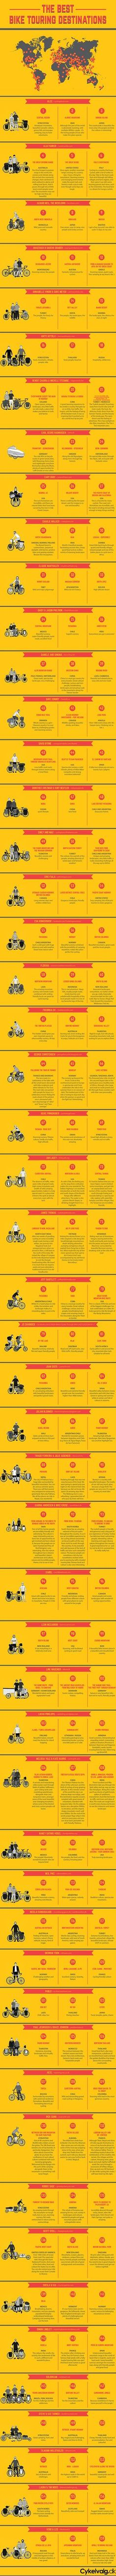 Bicycle Touring InfoGraphic